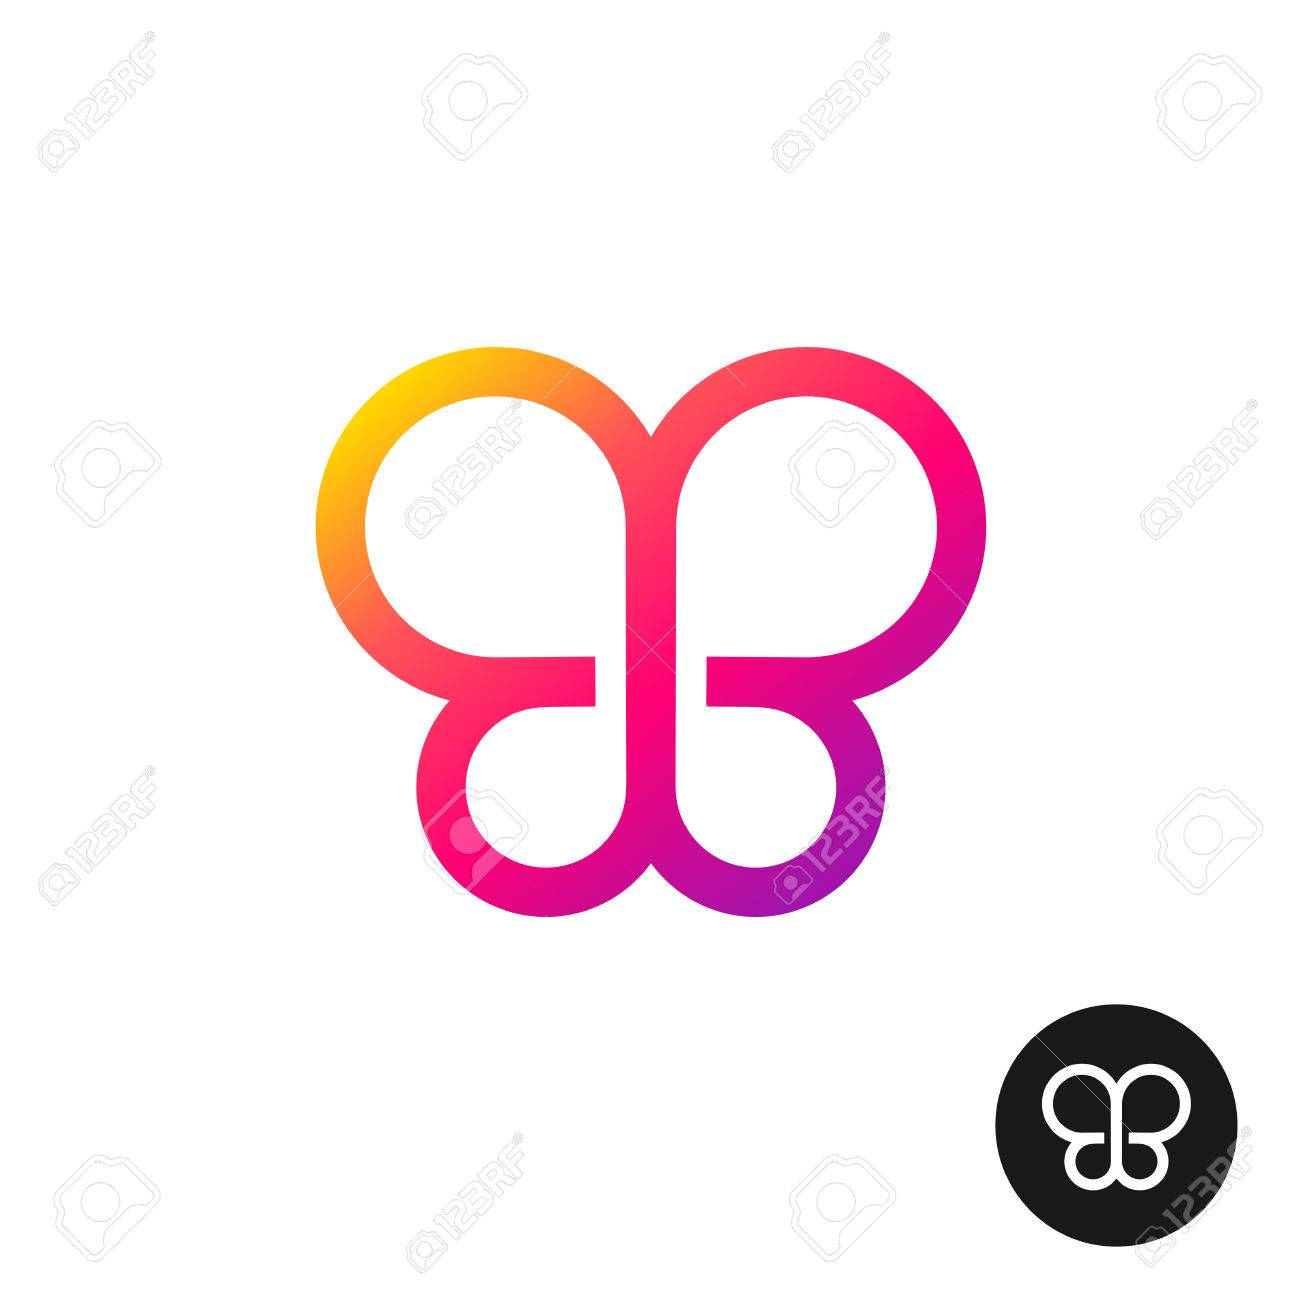 Colorful butterfly logo linear geometric style circles symbol colorful butterfly logo linear geometric style circles symbol stock vector 59667592 biocorpaavc Images